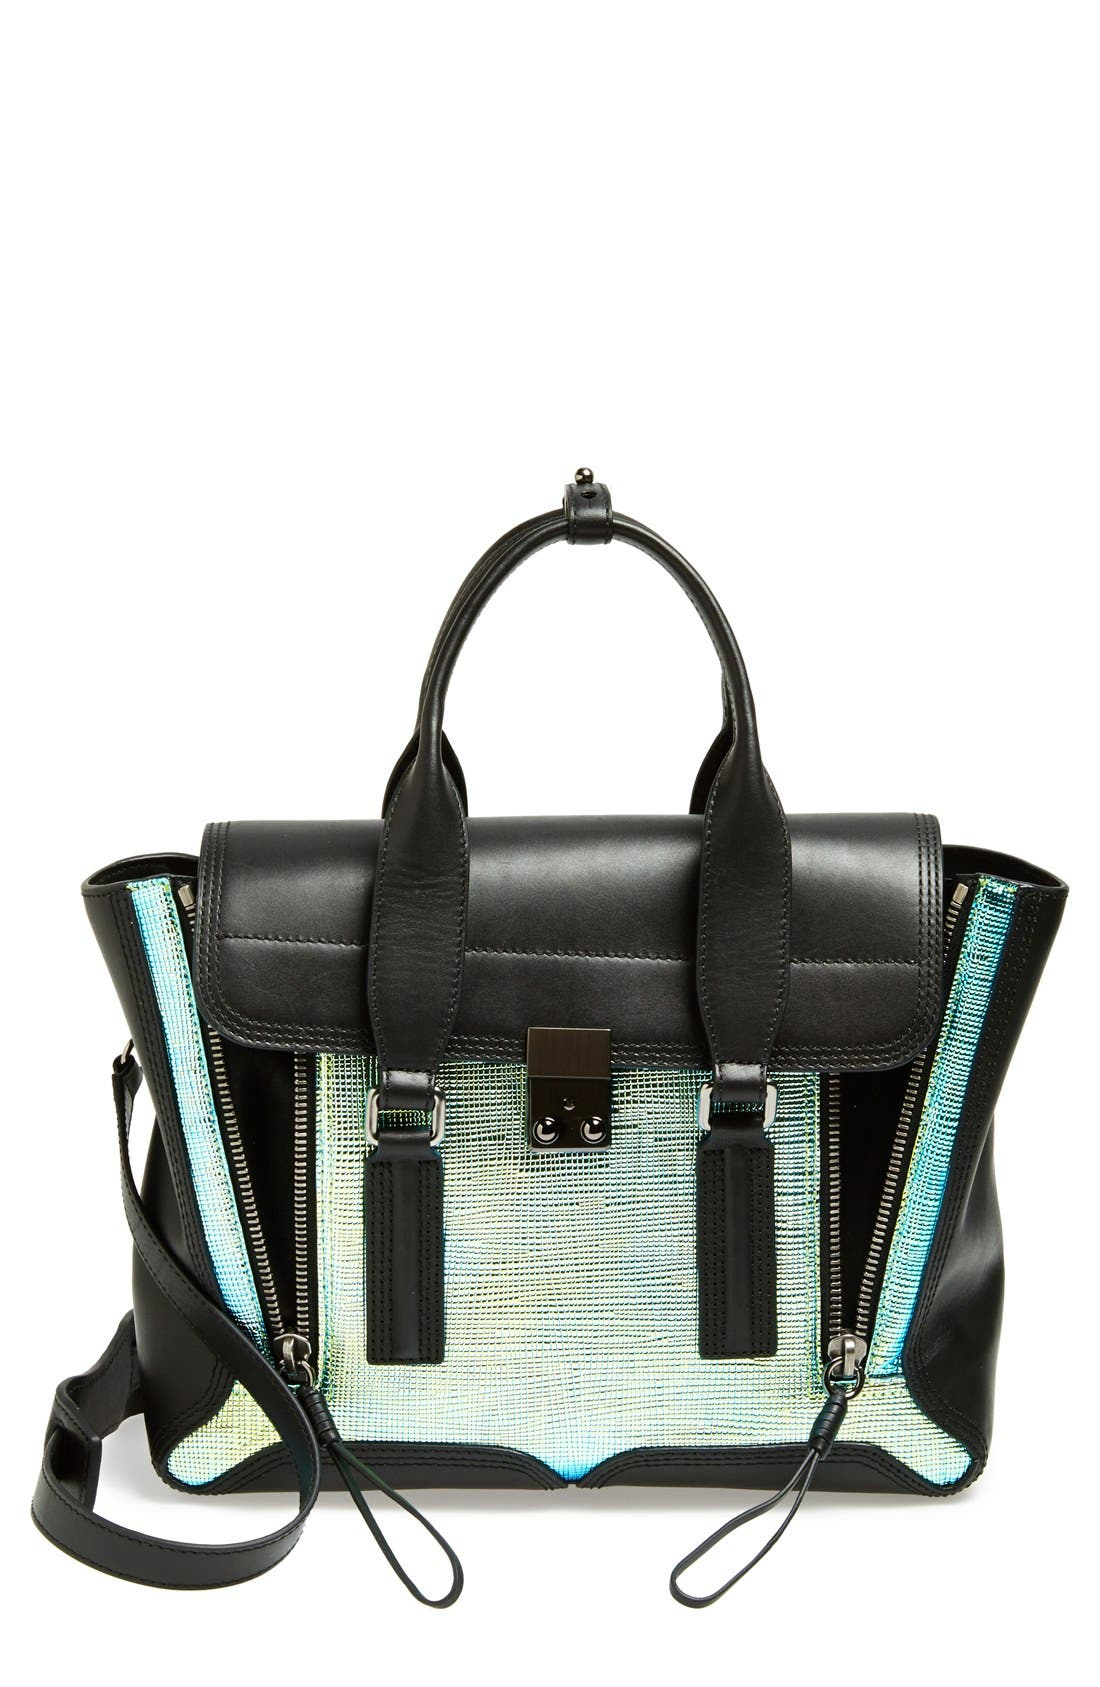 Main Image - 3.1 Phillip Lim 'Medium Pashli' Iridescent Satchel